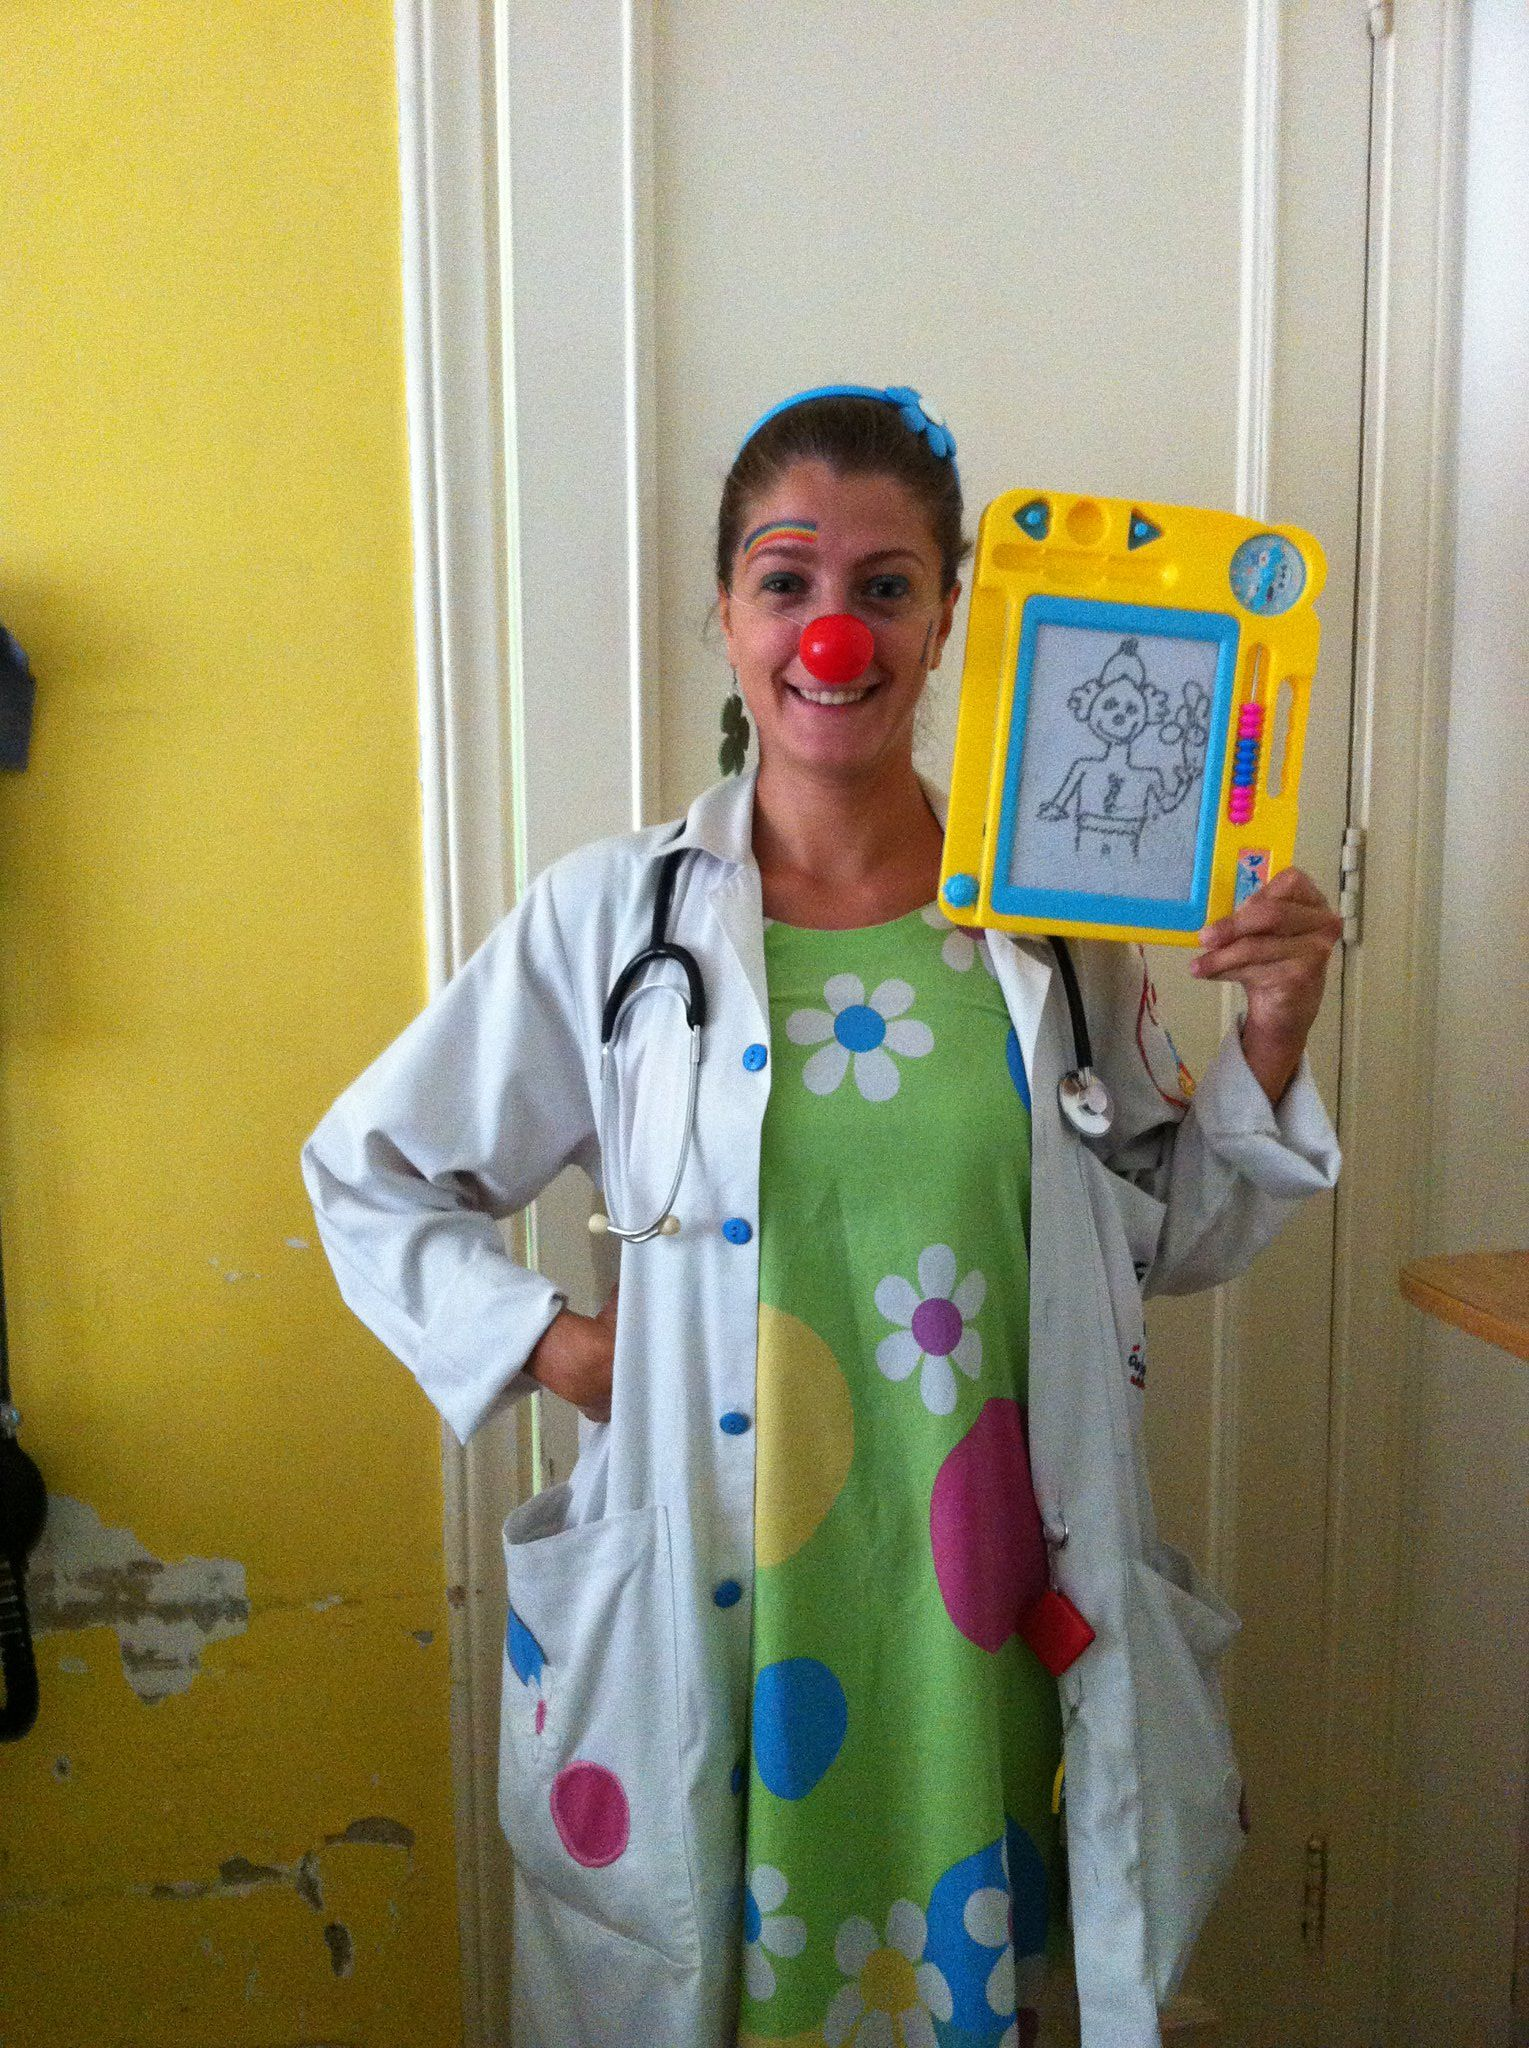 Ibtissama Clown Doctors Cheering Up Children In Hospitals - Artist visits sick children in hospital gives them amazing tattoos to cheer them up